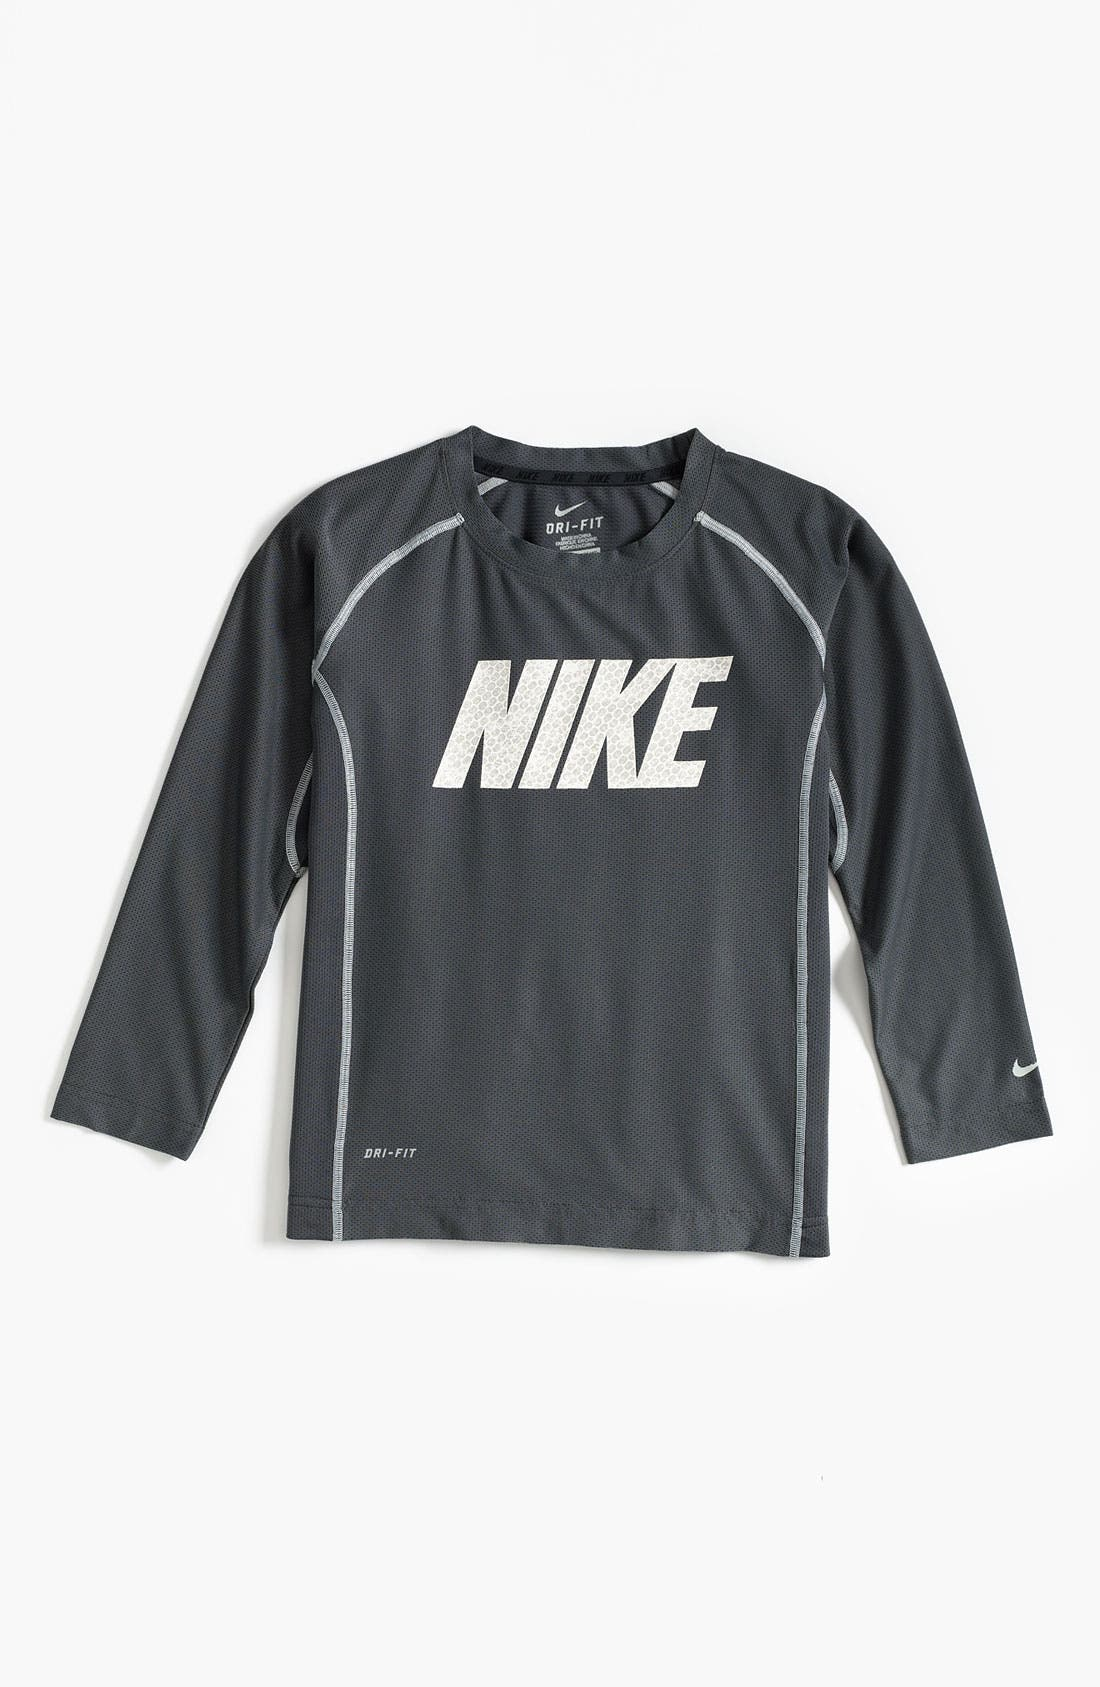 Main Image - Nike 'Speed Fly' Top (Little Boys)